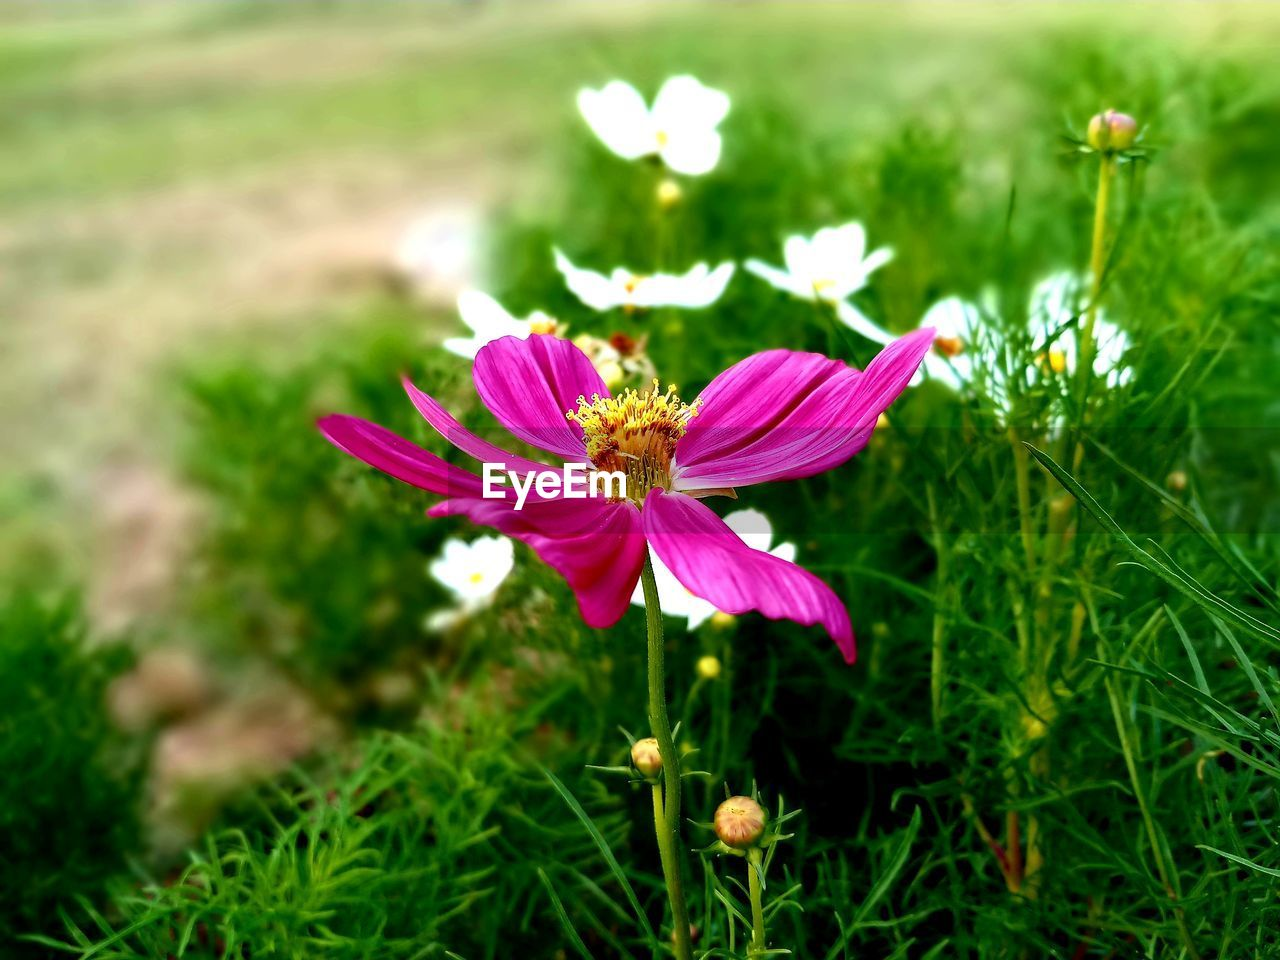 flower, growth, petal, nature, fragility, flower head, beauty in nature, plant, freshness, field, blooming, no people, grass, outdoors, day, close-up